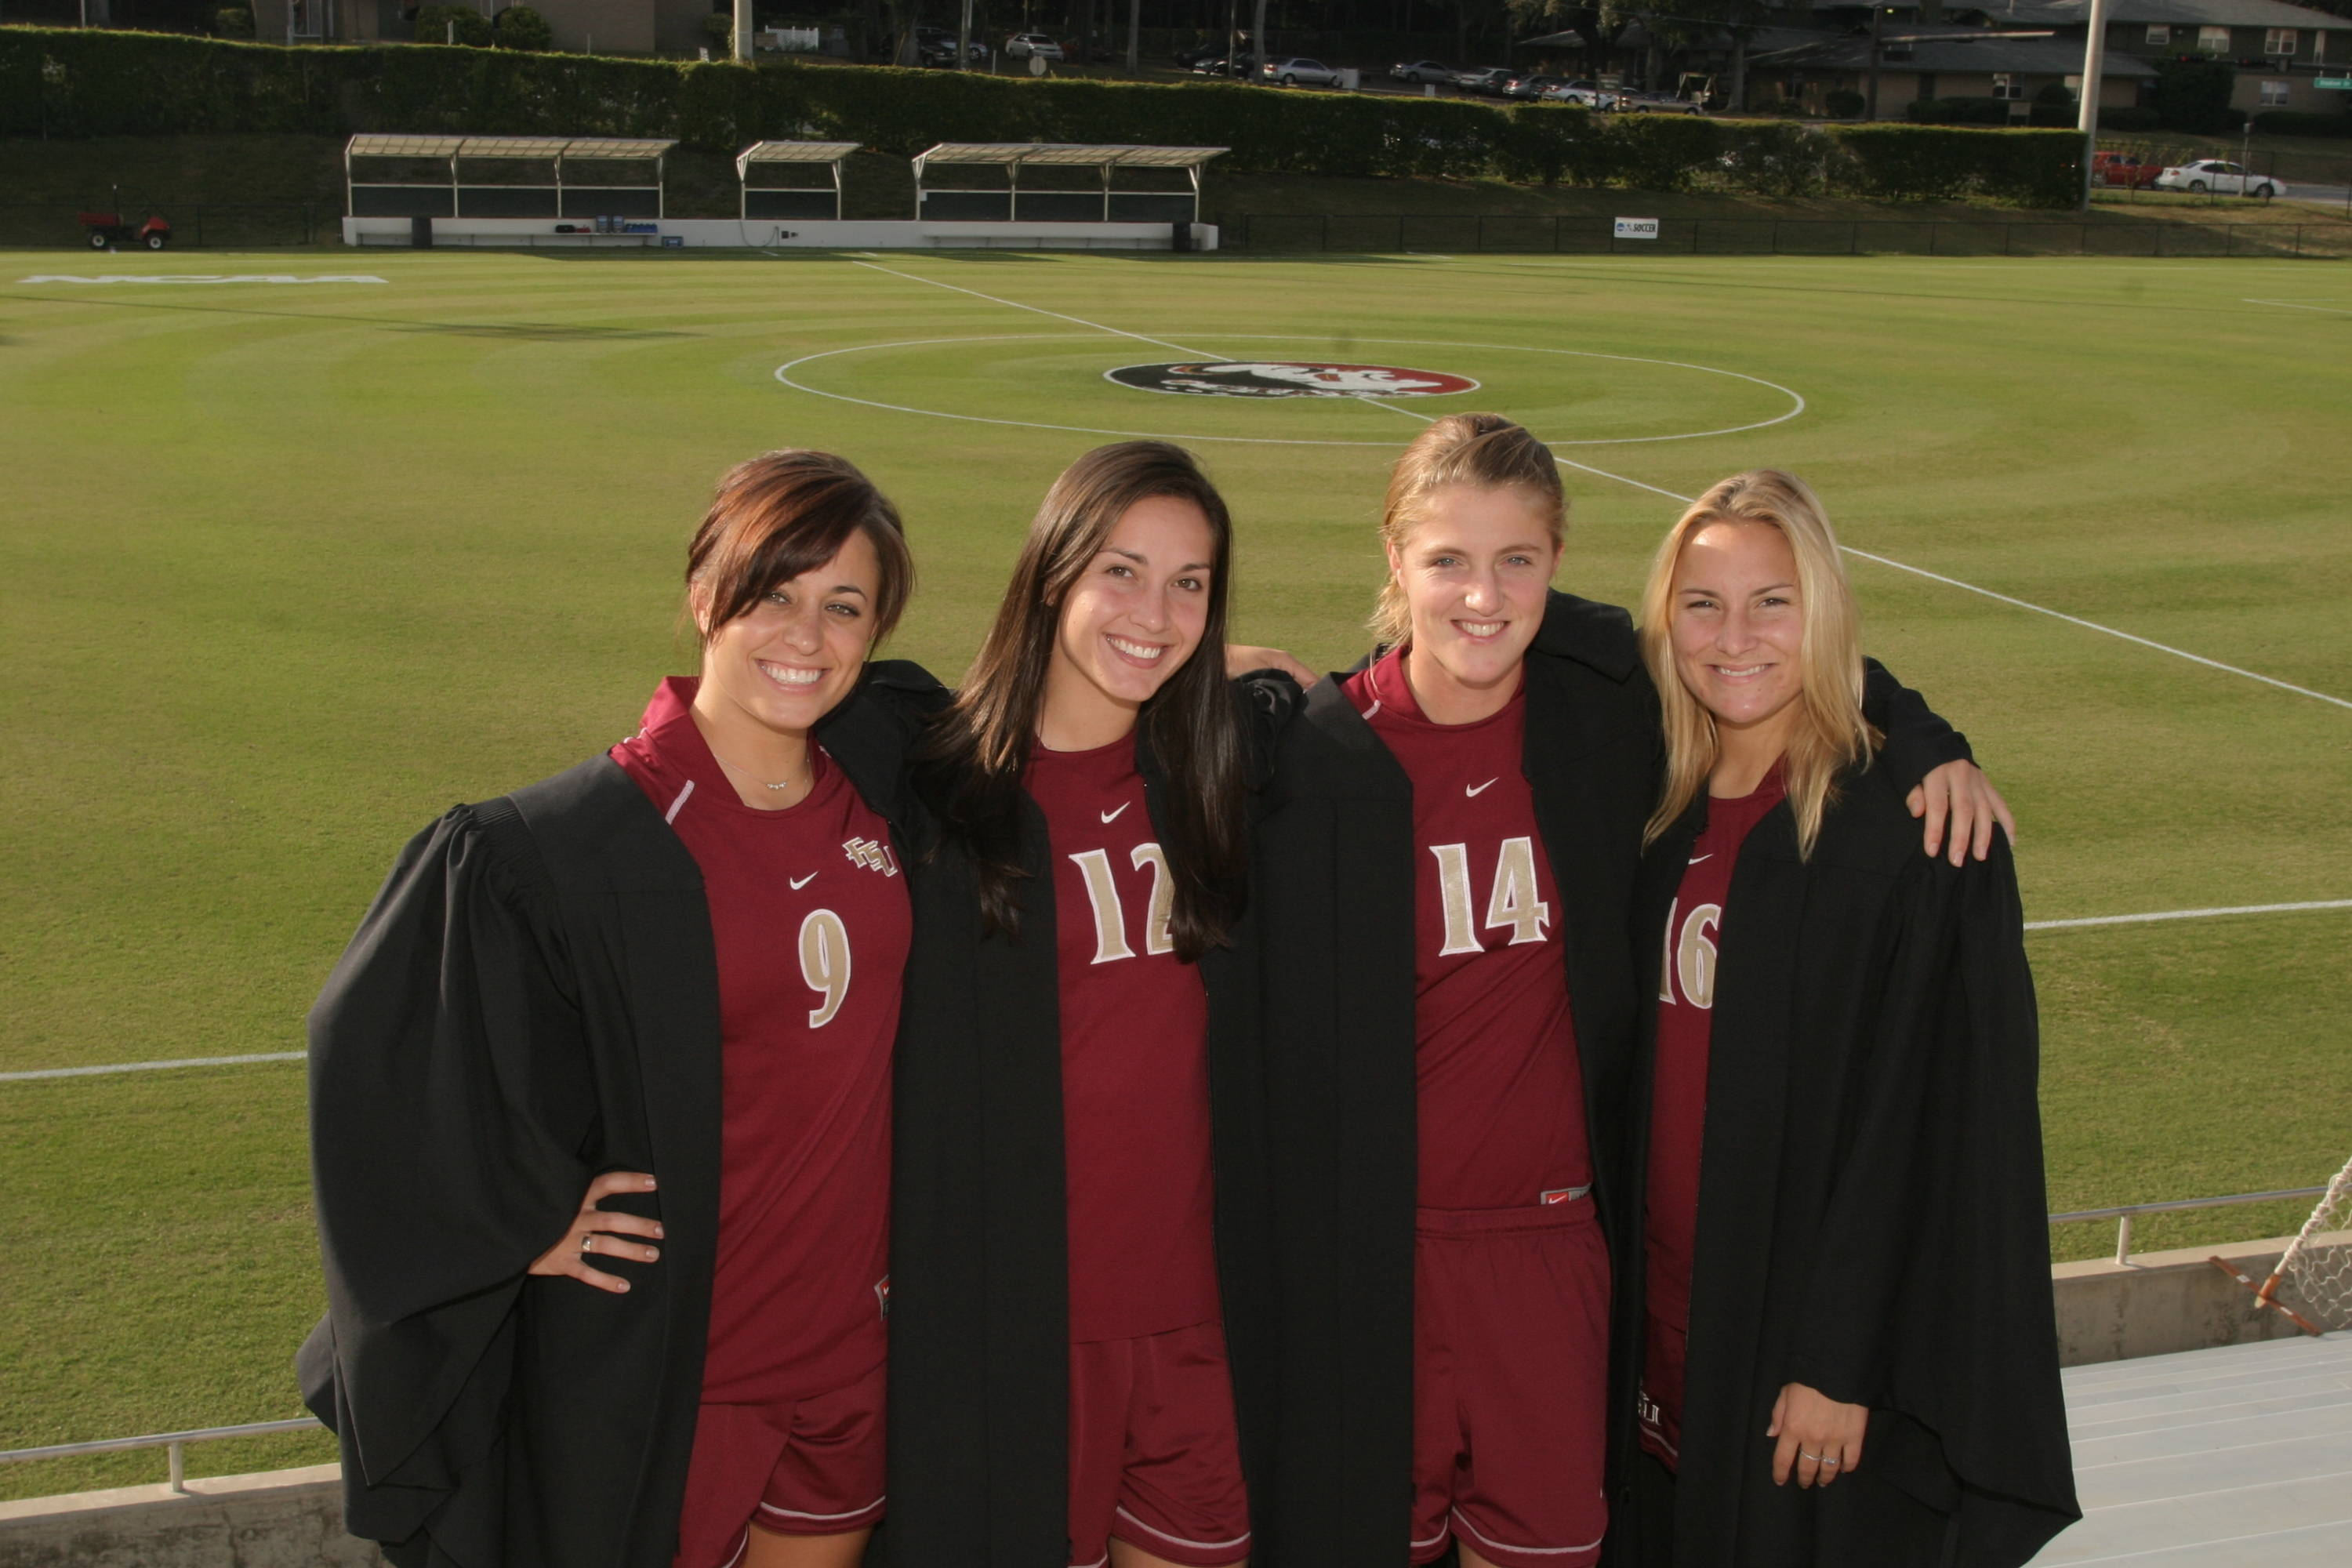 2007 season- Melissa Samokishyn, Libby Gianeskis, Kirsten van de Ven, and Holly Peltzer.